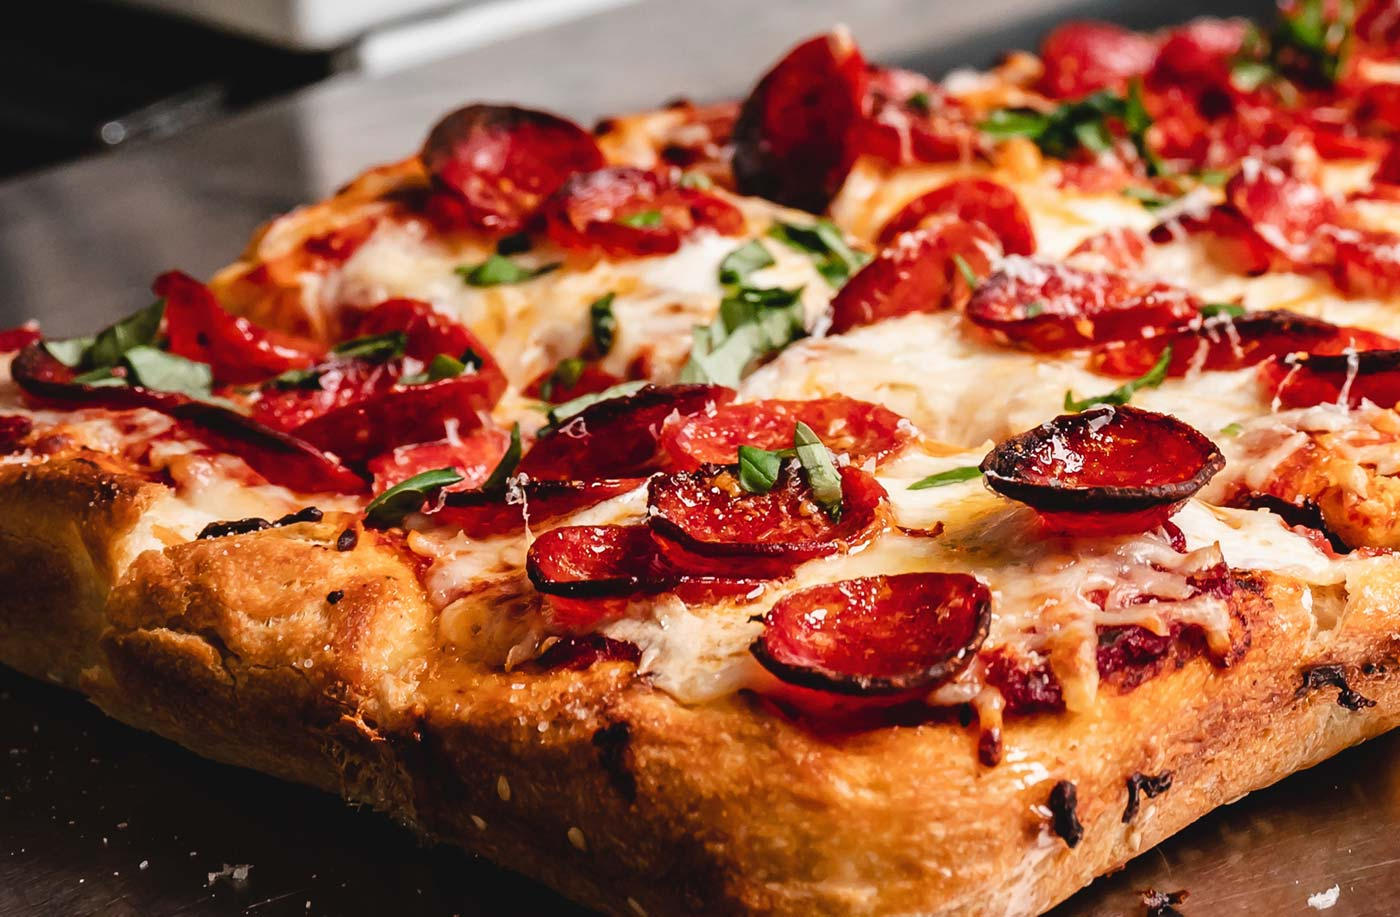 The Wizard's began making his own Sicilian-style pizzas because he couldn't find anything quite like it in Columbus.